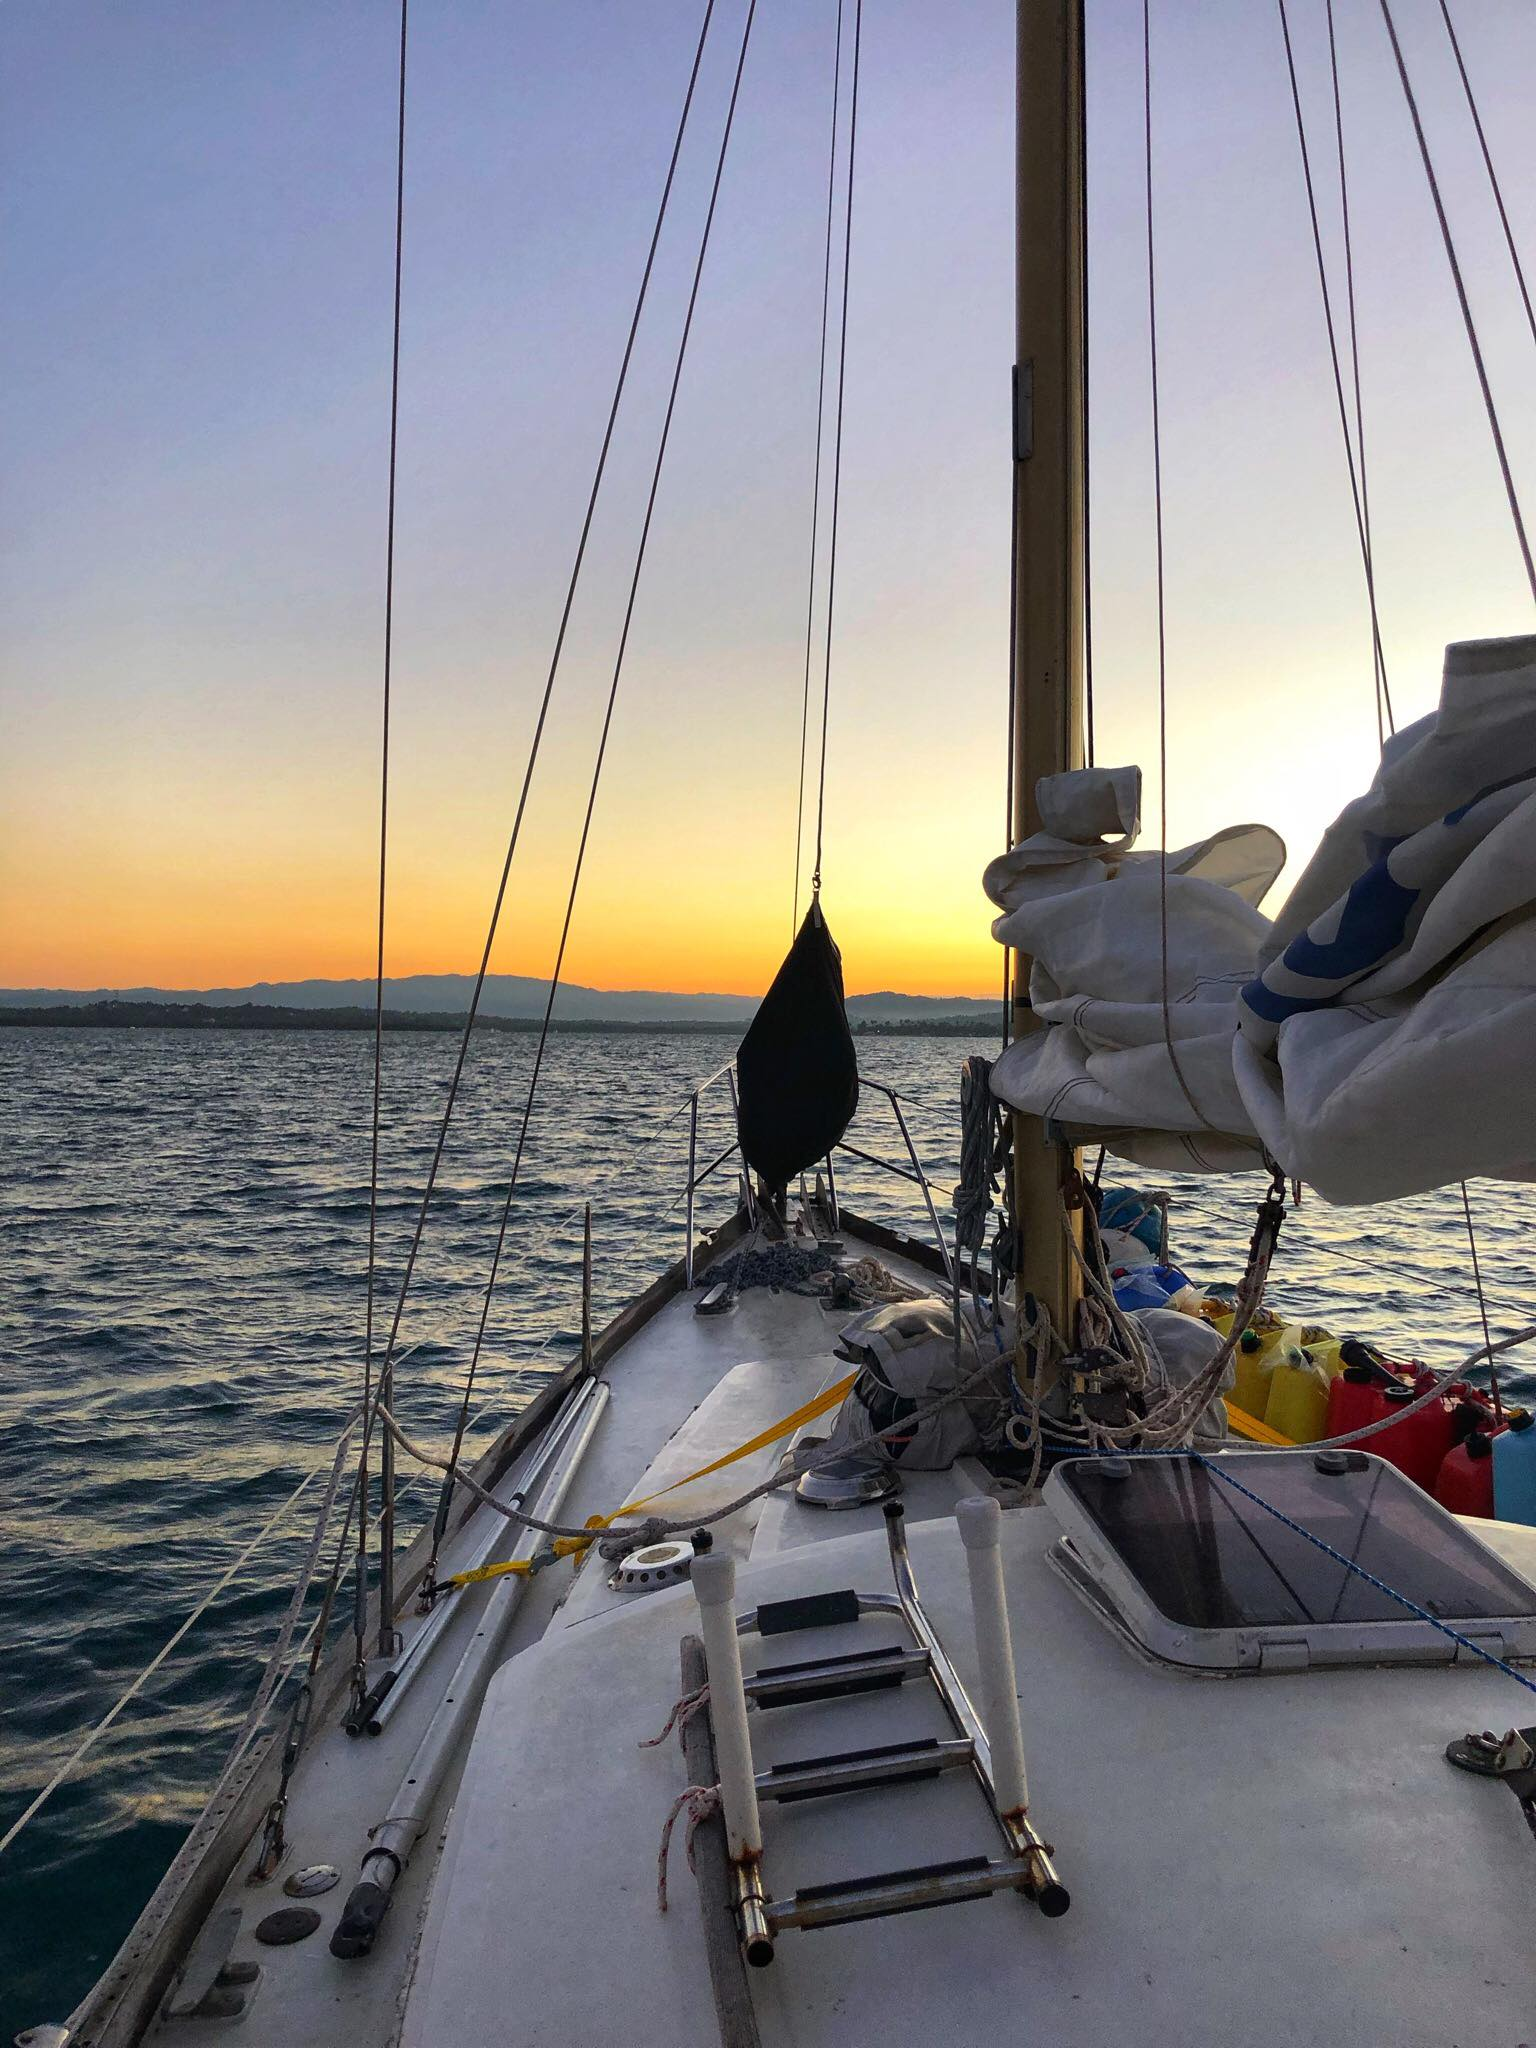 Sailing Life Day 298 Arrived in PUERTO RICO8.jpg